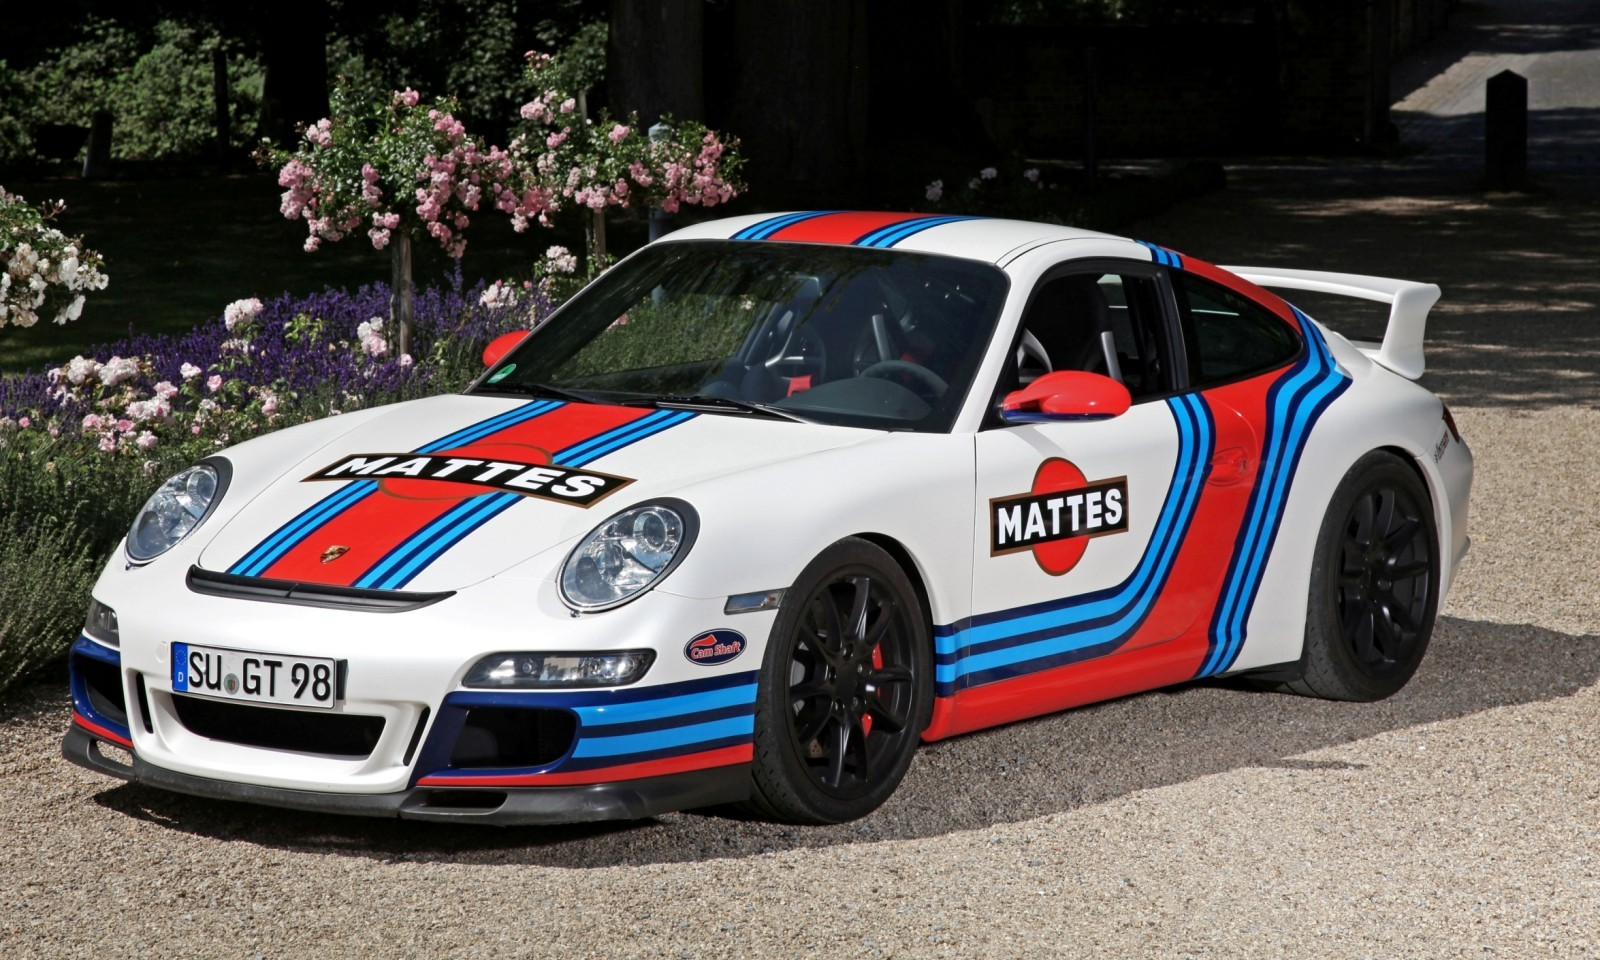 Martini-style Racing Livery by CAM SHAFT for the Porsche 911 GT3 15